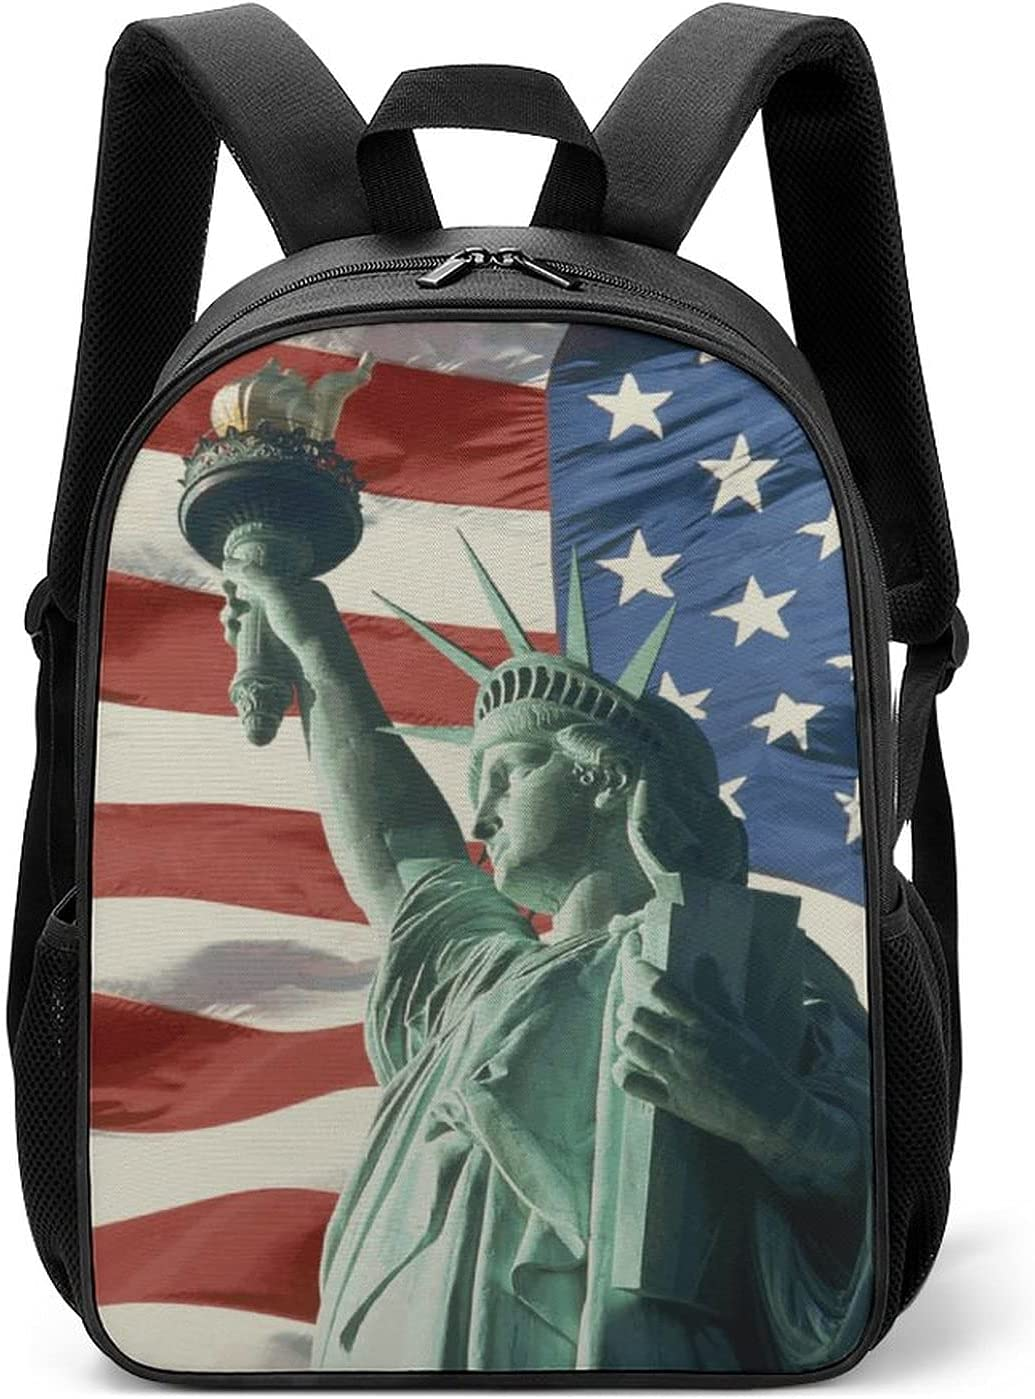 Liberty Children's school bag multi-purpose backpack Large special price !! exq Beauty products cute